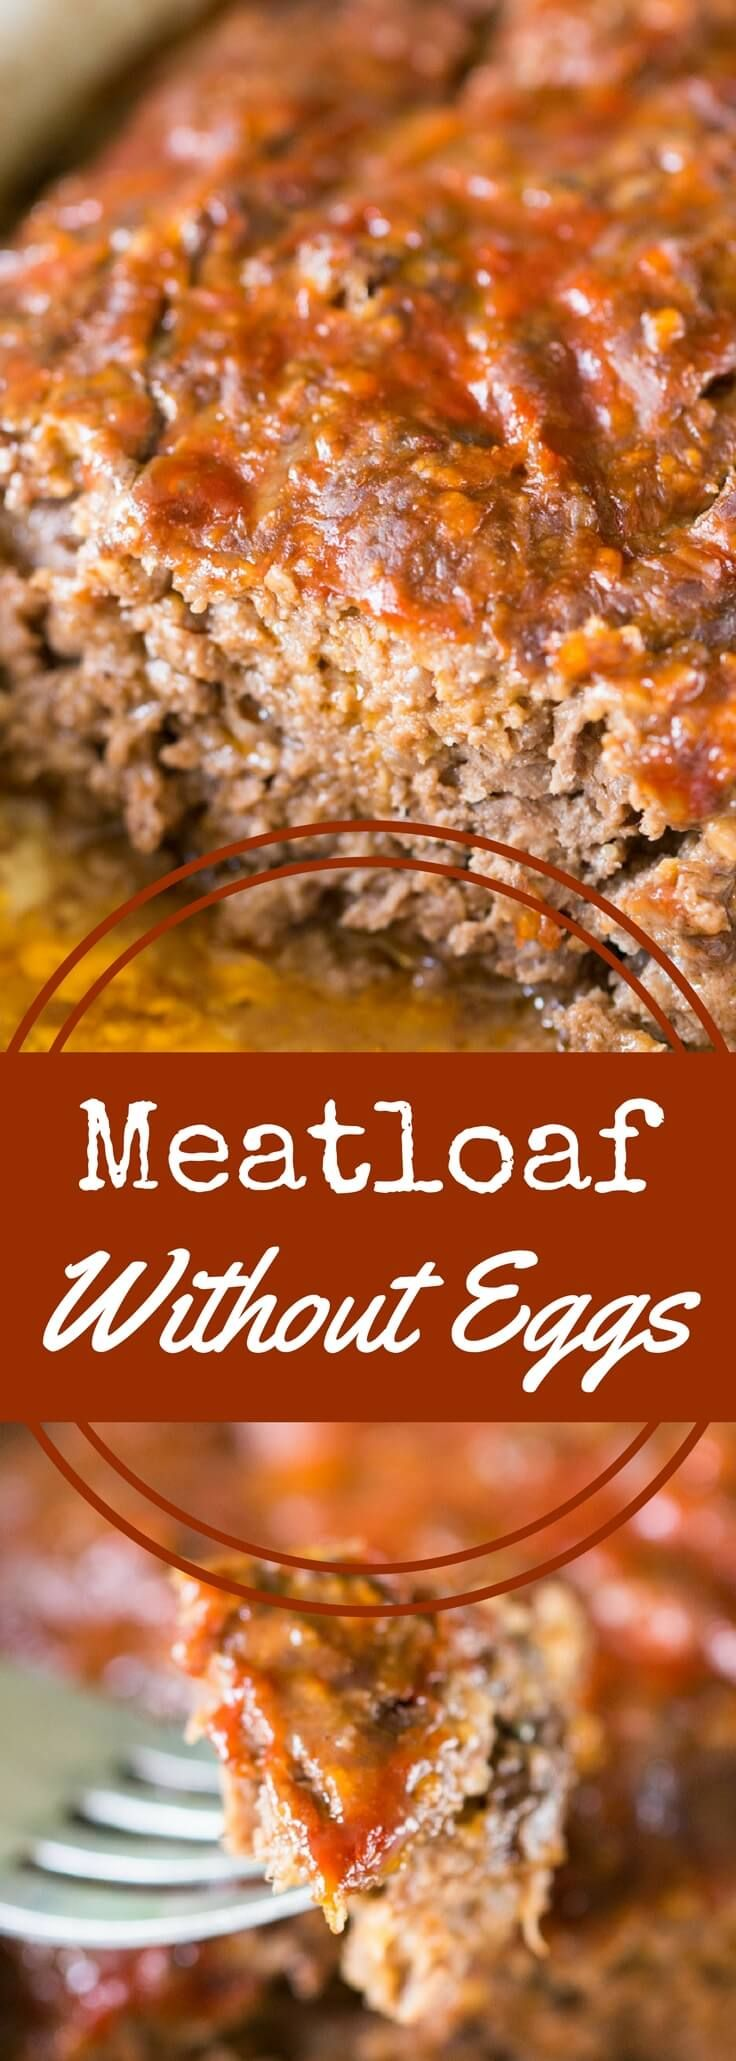 Meatloaf Without Eggs Recipe Recipes Meatloaf Meat Loaf Recipe Easy